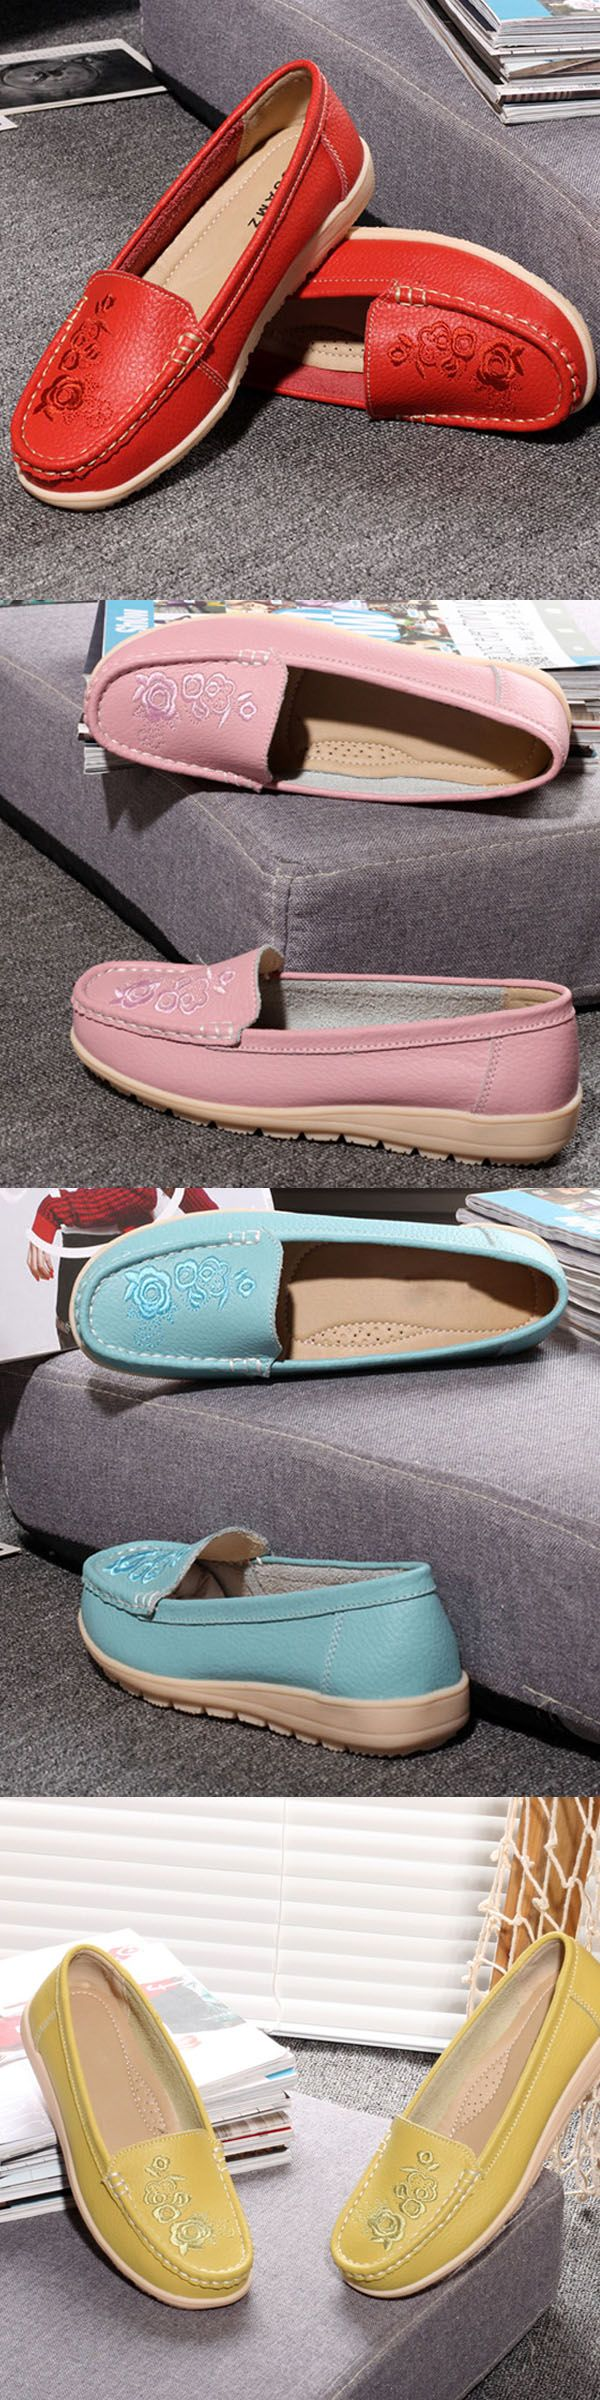 US$15.13 Flower Print Pure Color Flat Leather Slip On Casual Loafers_Floral Shoes_Flat Outfits